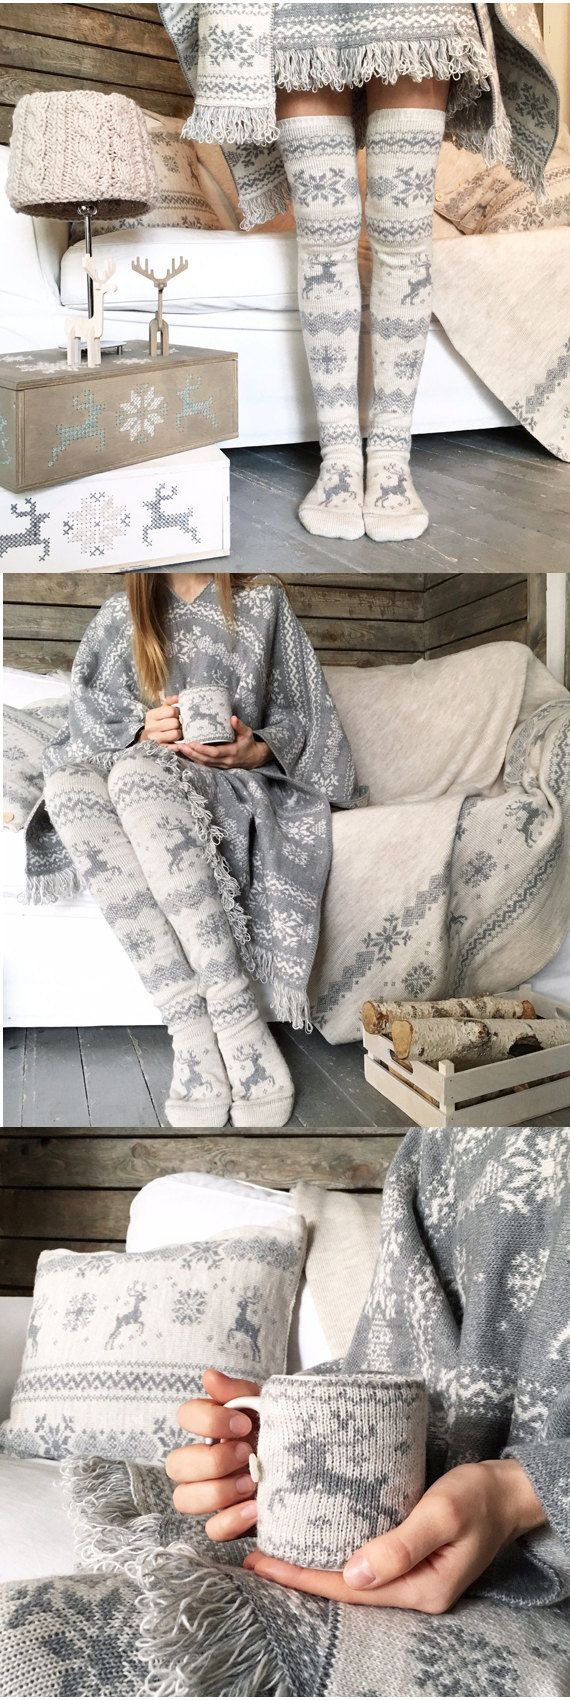 30% OFF Knee High Winter Pattern Knit Thick Wool Socks, Woman Leg Warmers, Beige & Grey, FREE Gift Wrapping, For Girls